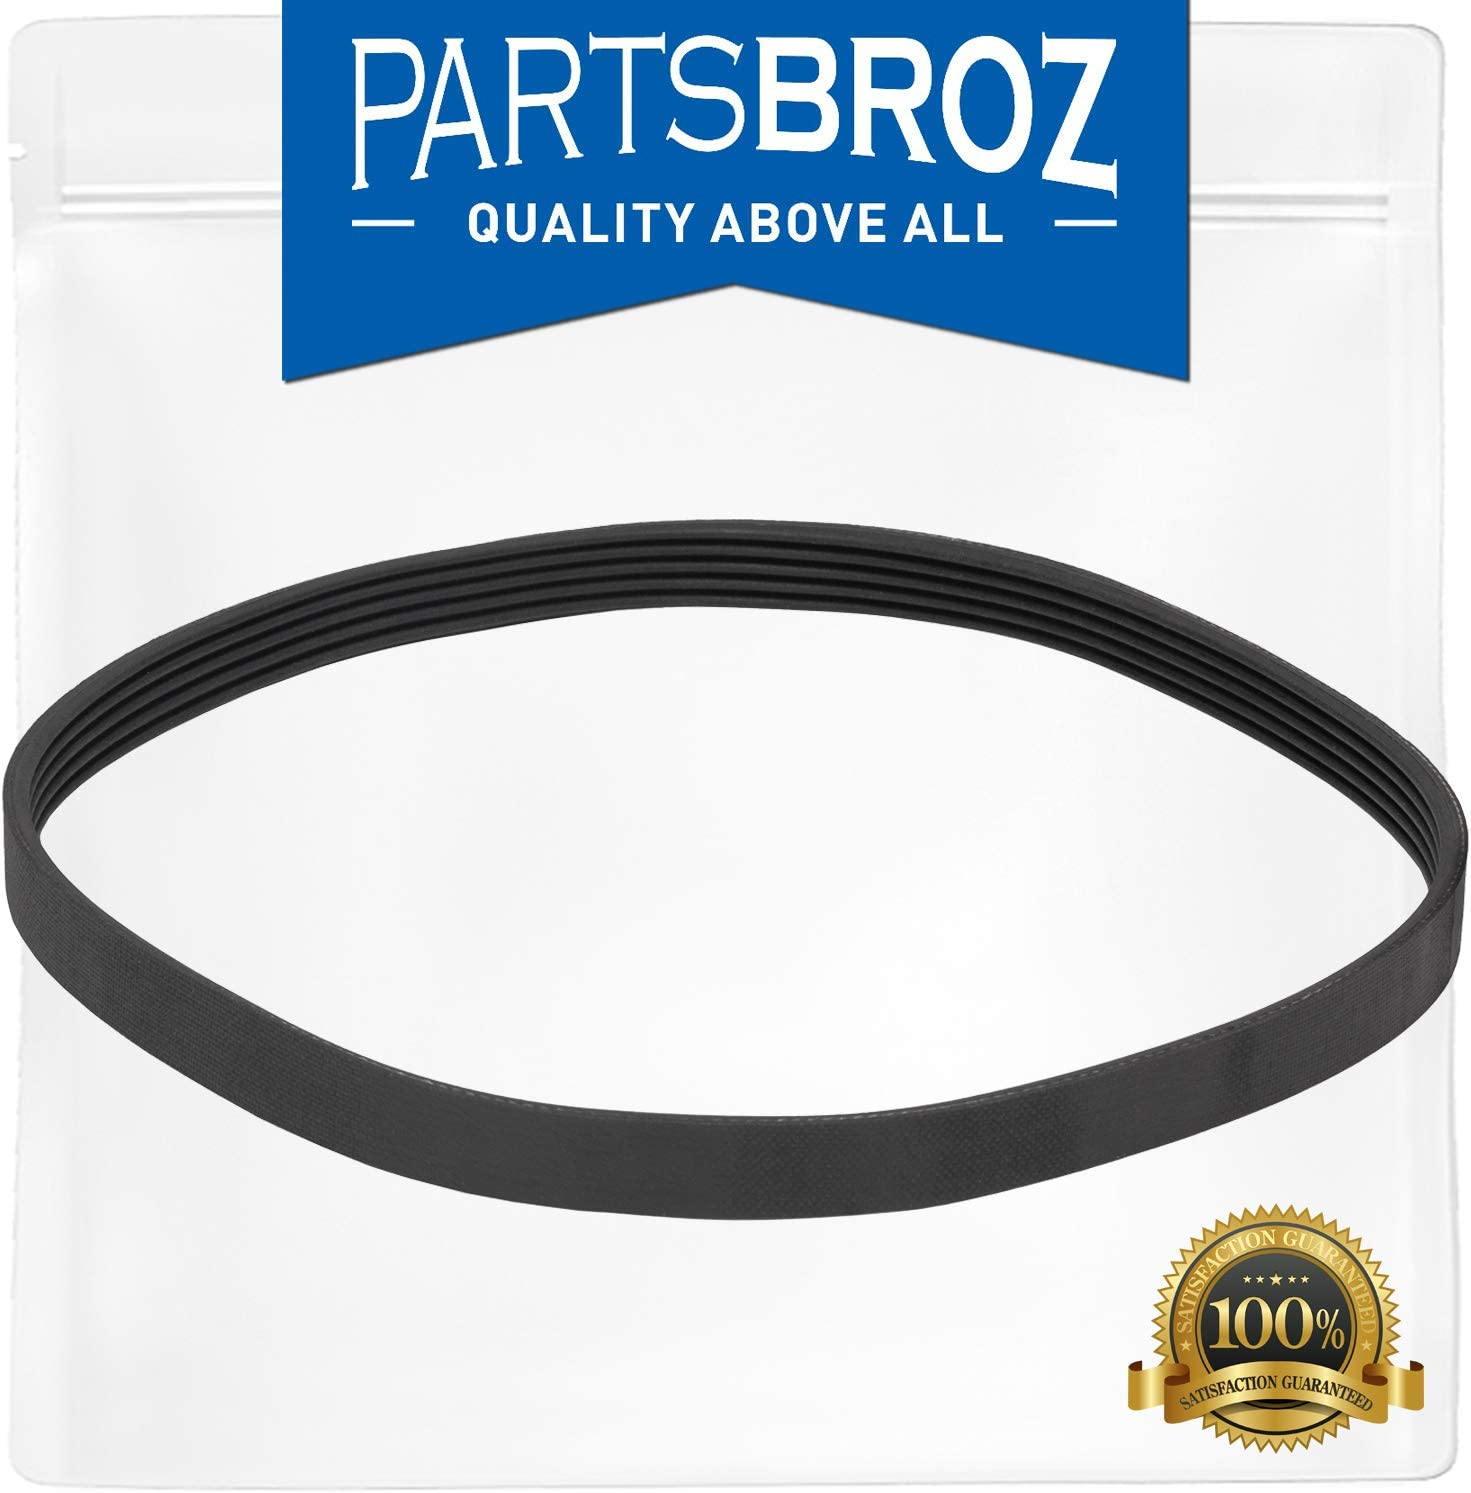 W10006384 Drive Belt by PartsBroz - Compatible with Whirlpool Washing Machines - Replaces WPW10006384, AP6014712, PS11747978 & WPW10006384VP